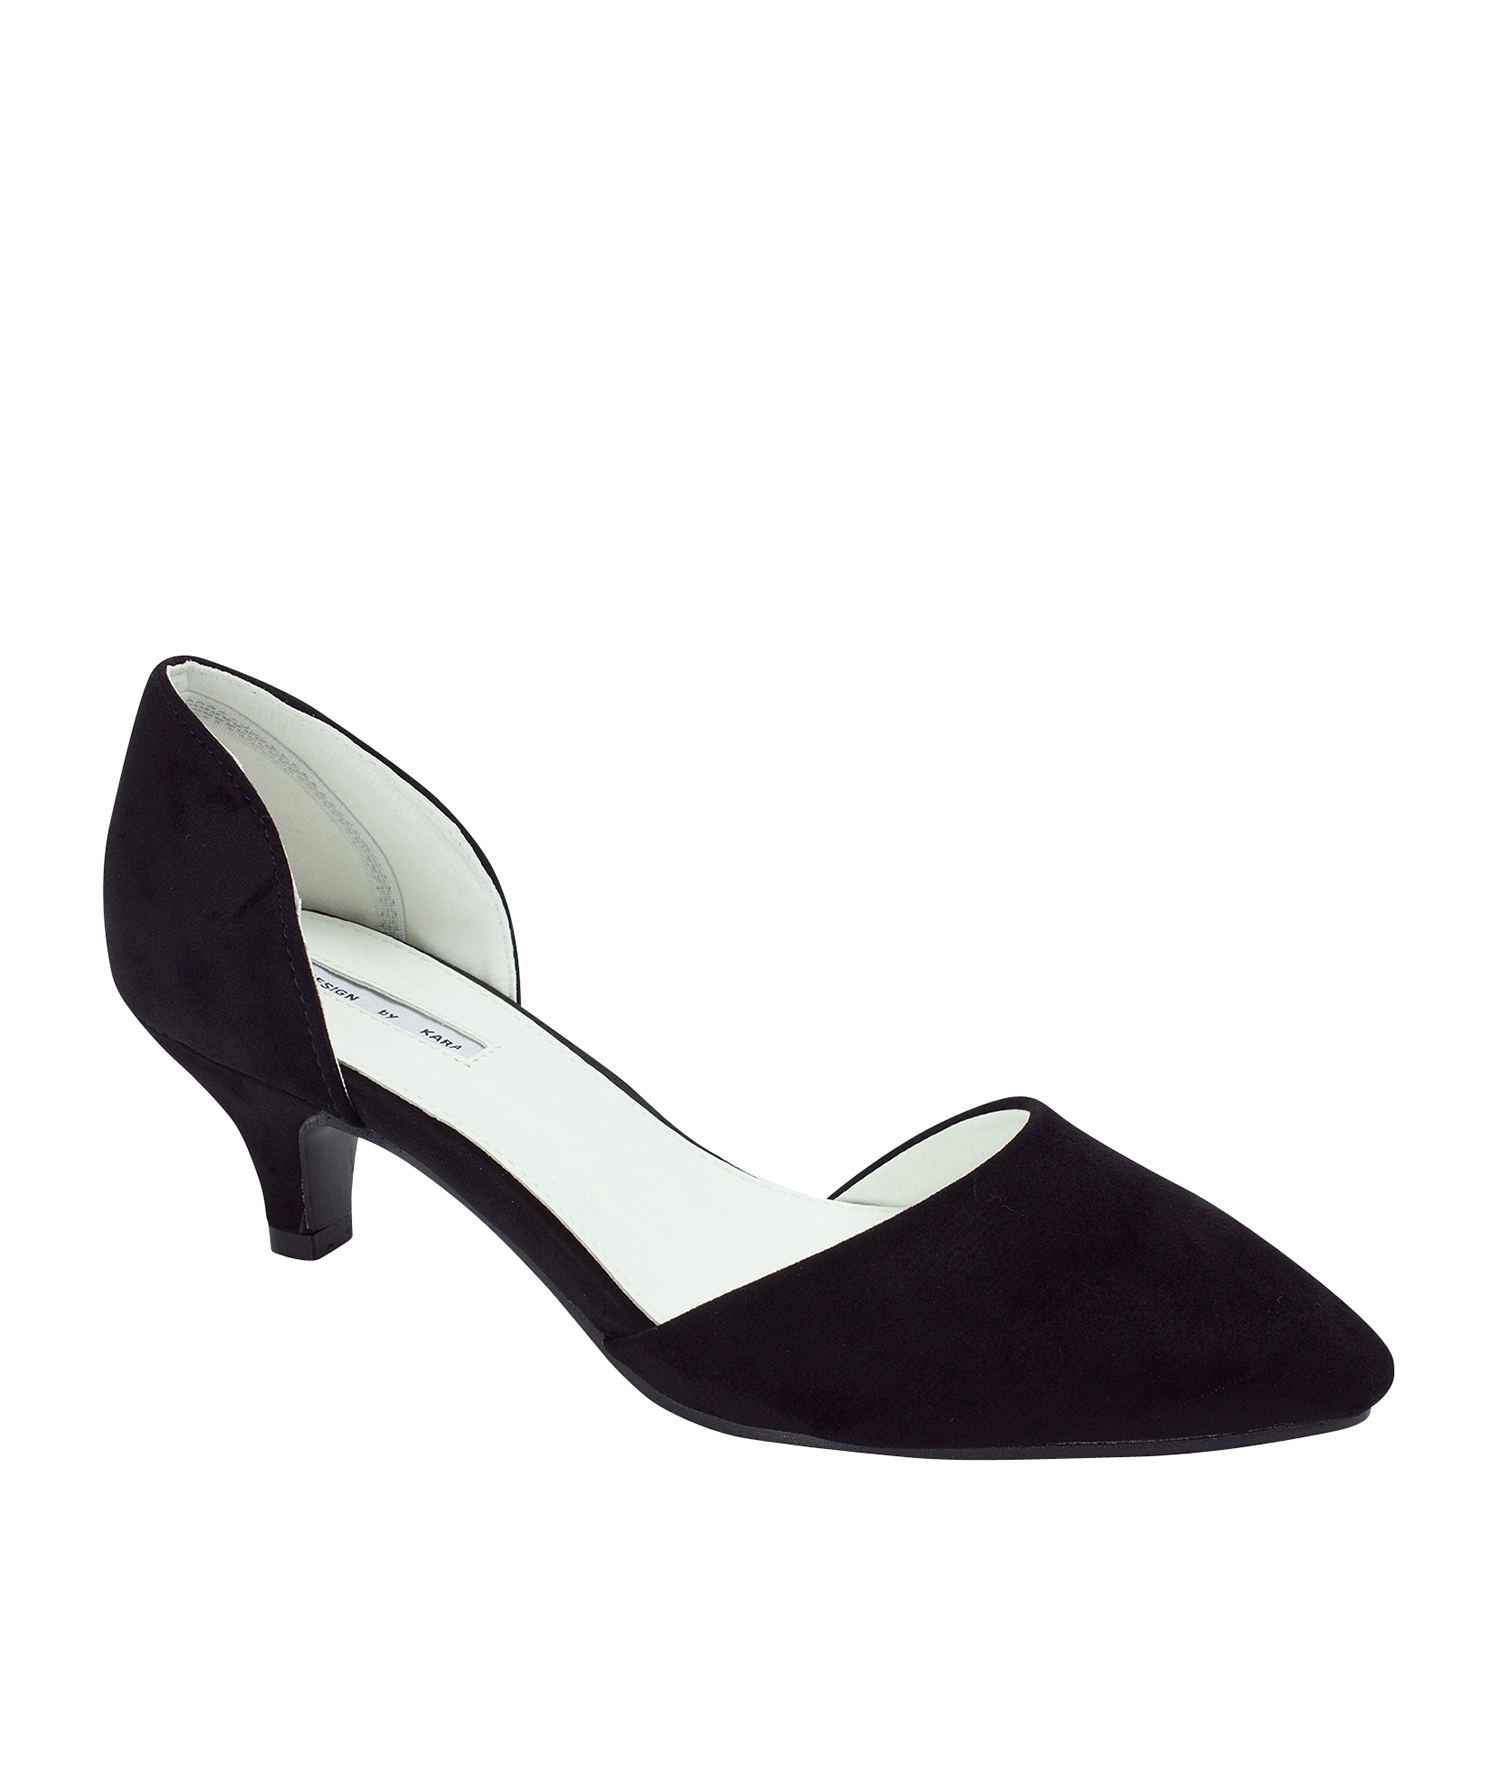 5a5a2cc5c730 Faux Suede d Orsay Kitten Heels. AnnaKastle Womens Square Toe Low Heel  Pumps Black